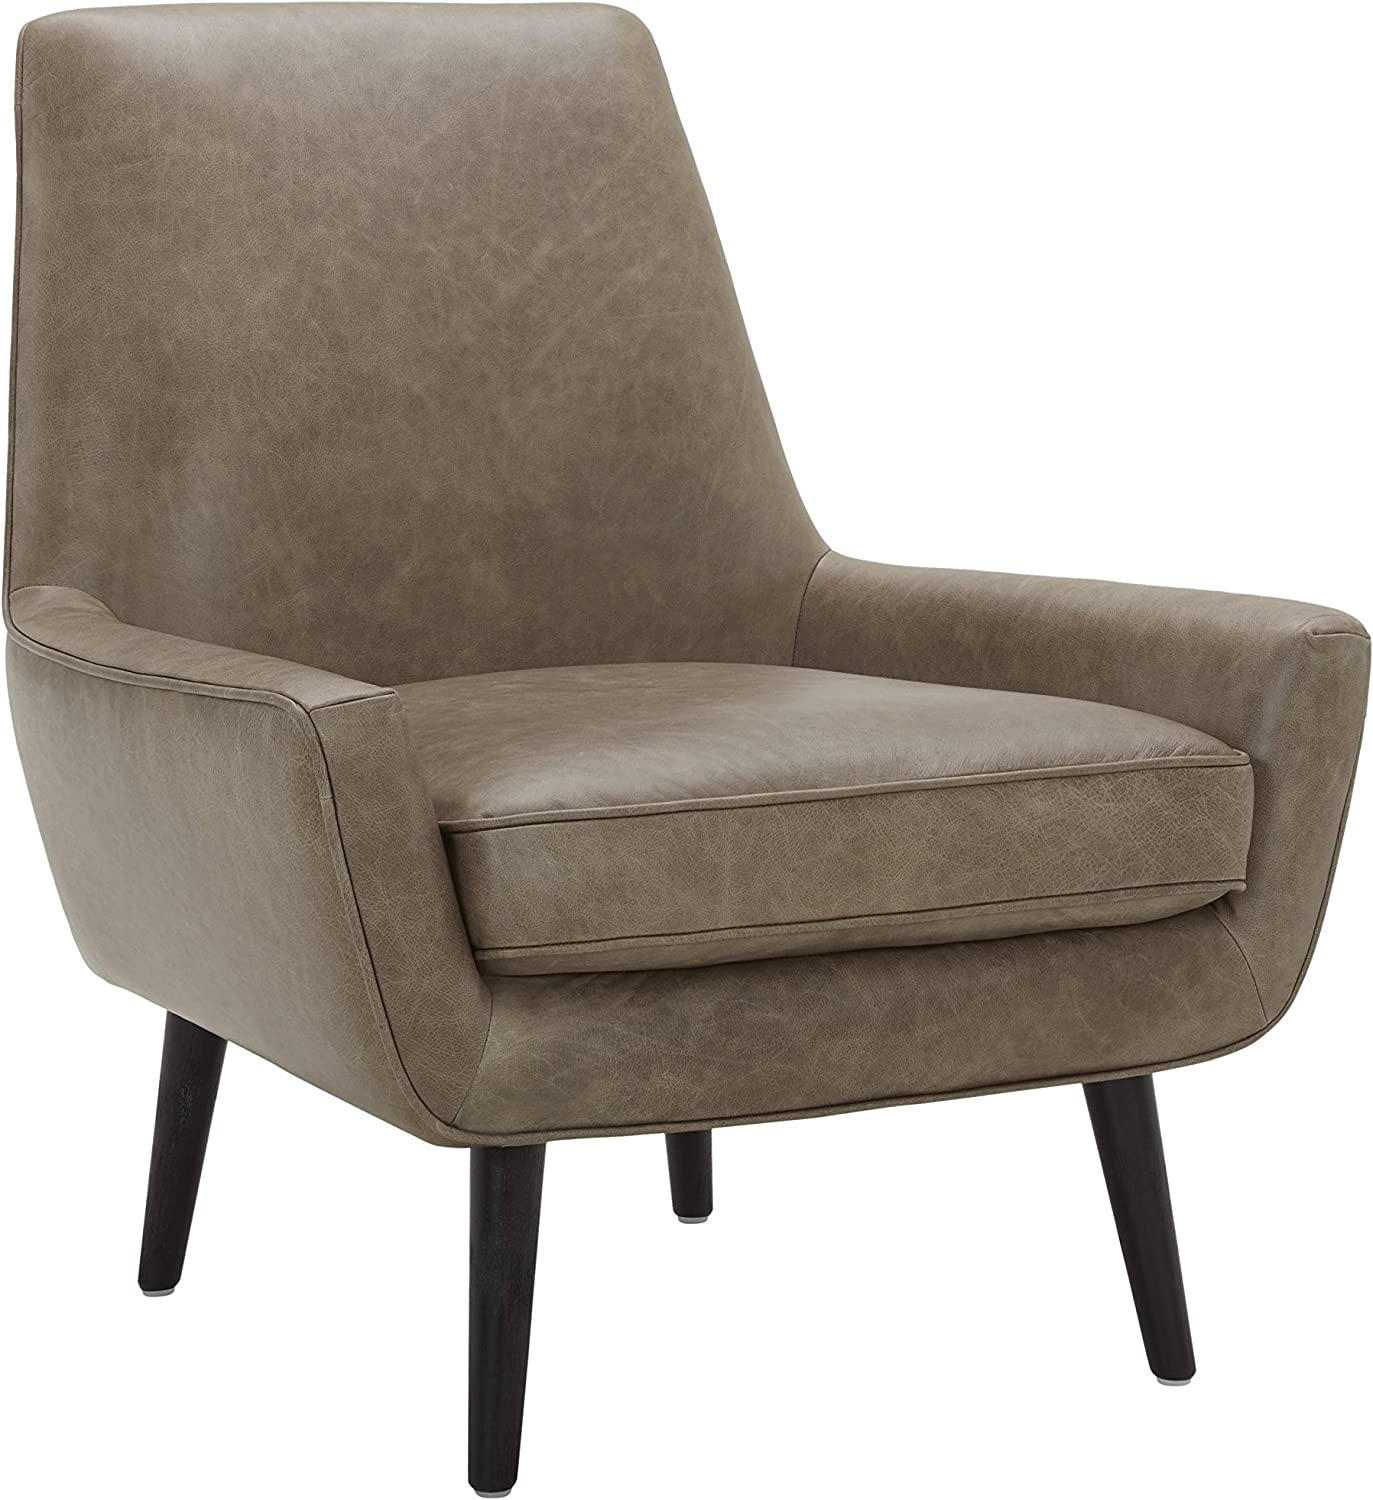 "Amazon Brand – Rivet Jamie Leather Mid-Century Modern Low Arm Accent Chair, 31""W, Grey"